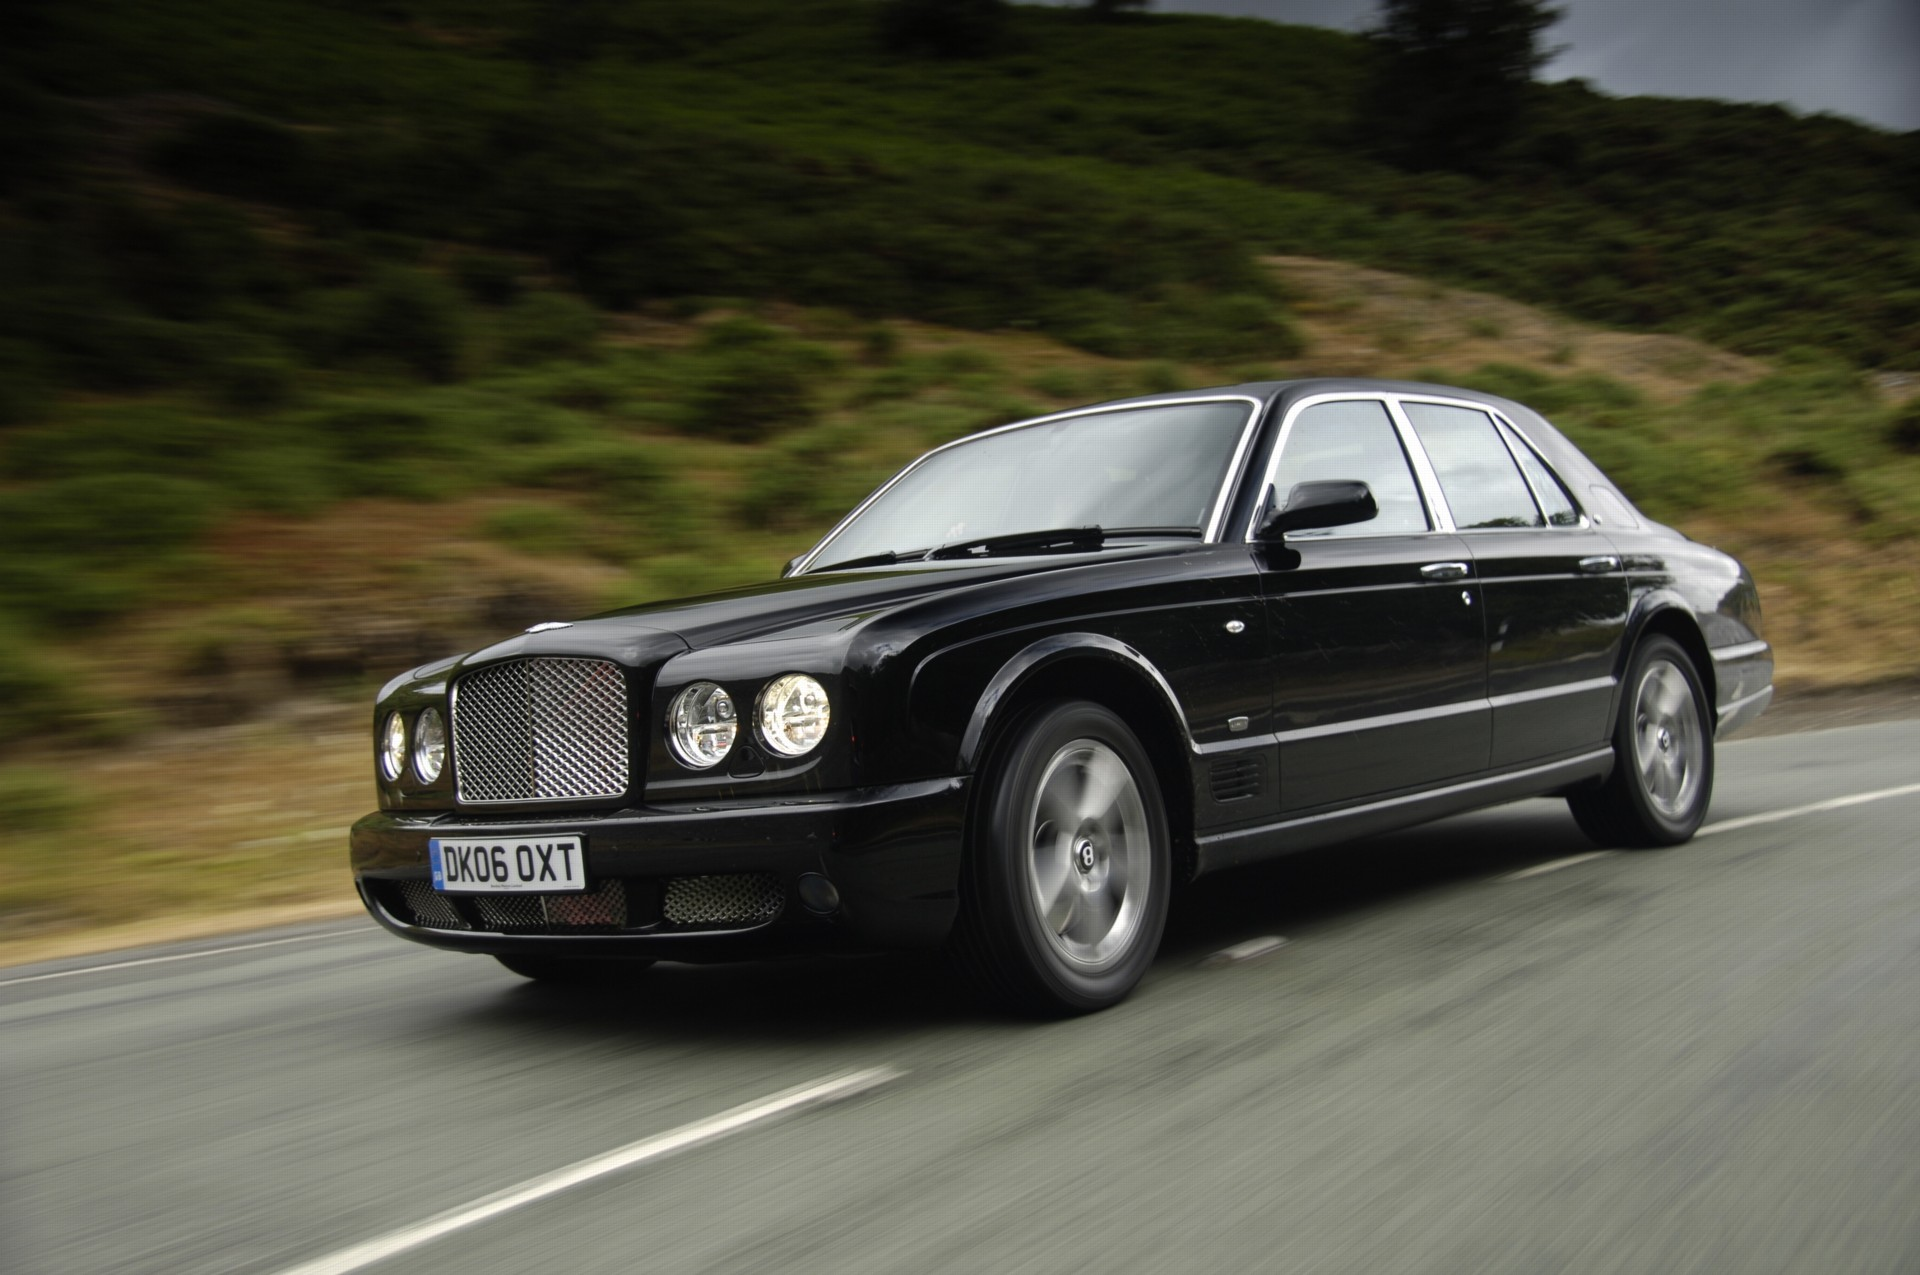 Bentley Car Wallpaper >> 2007 Bentley Arnage R - conceptcarz.com